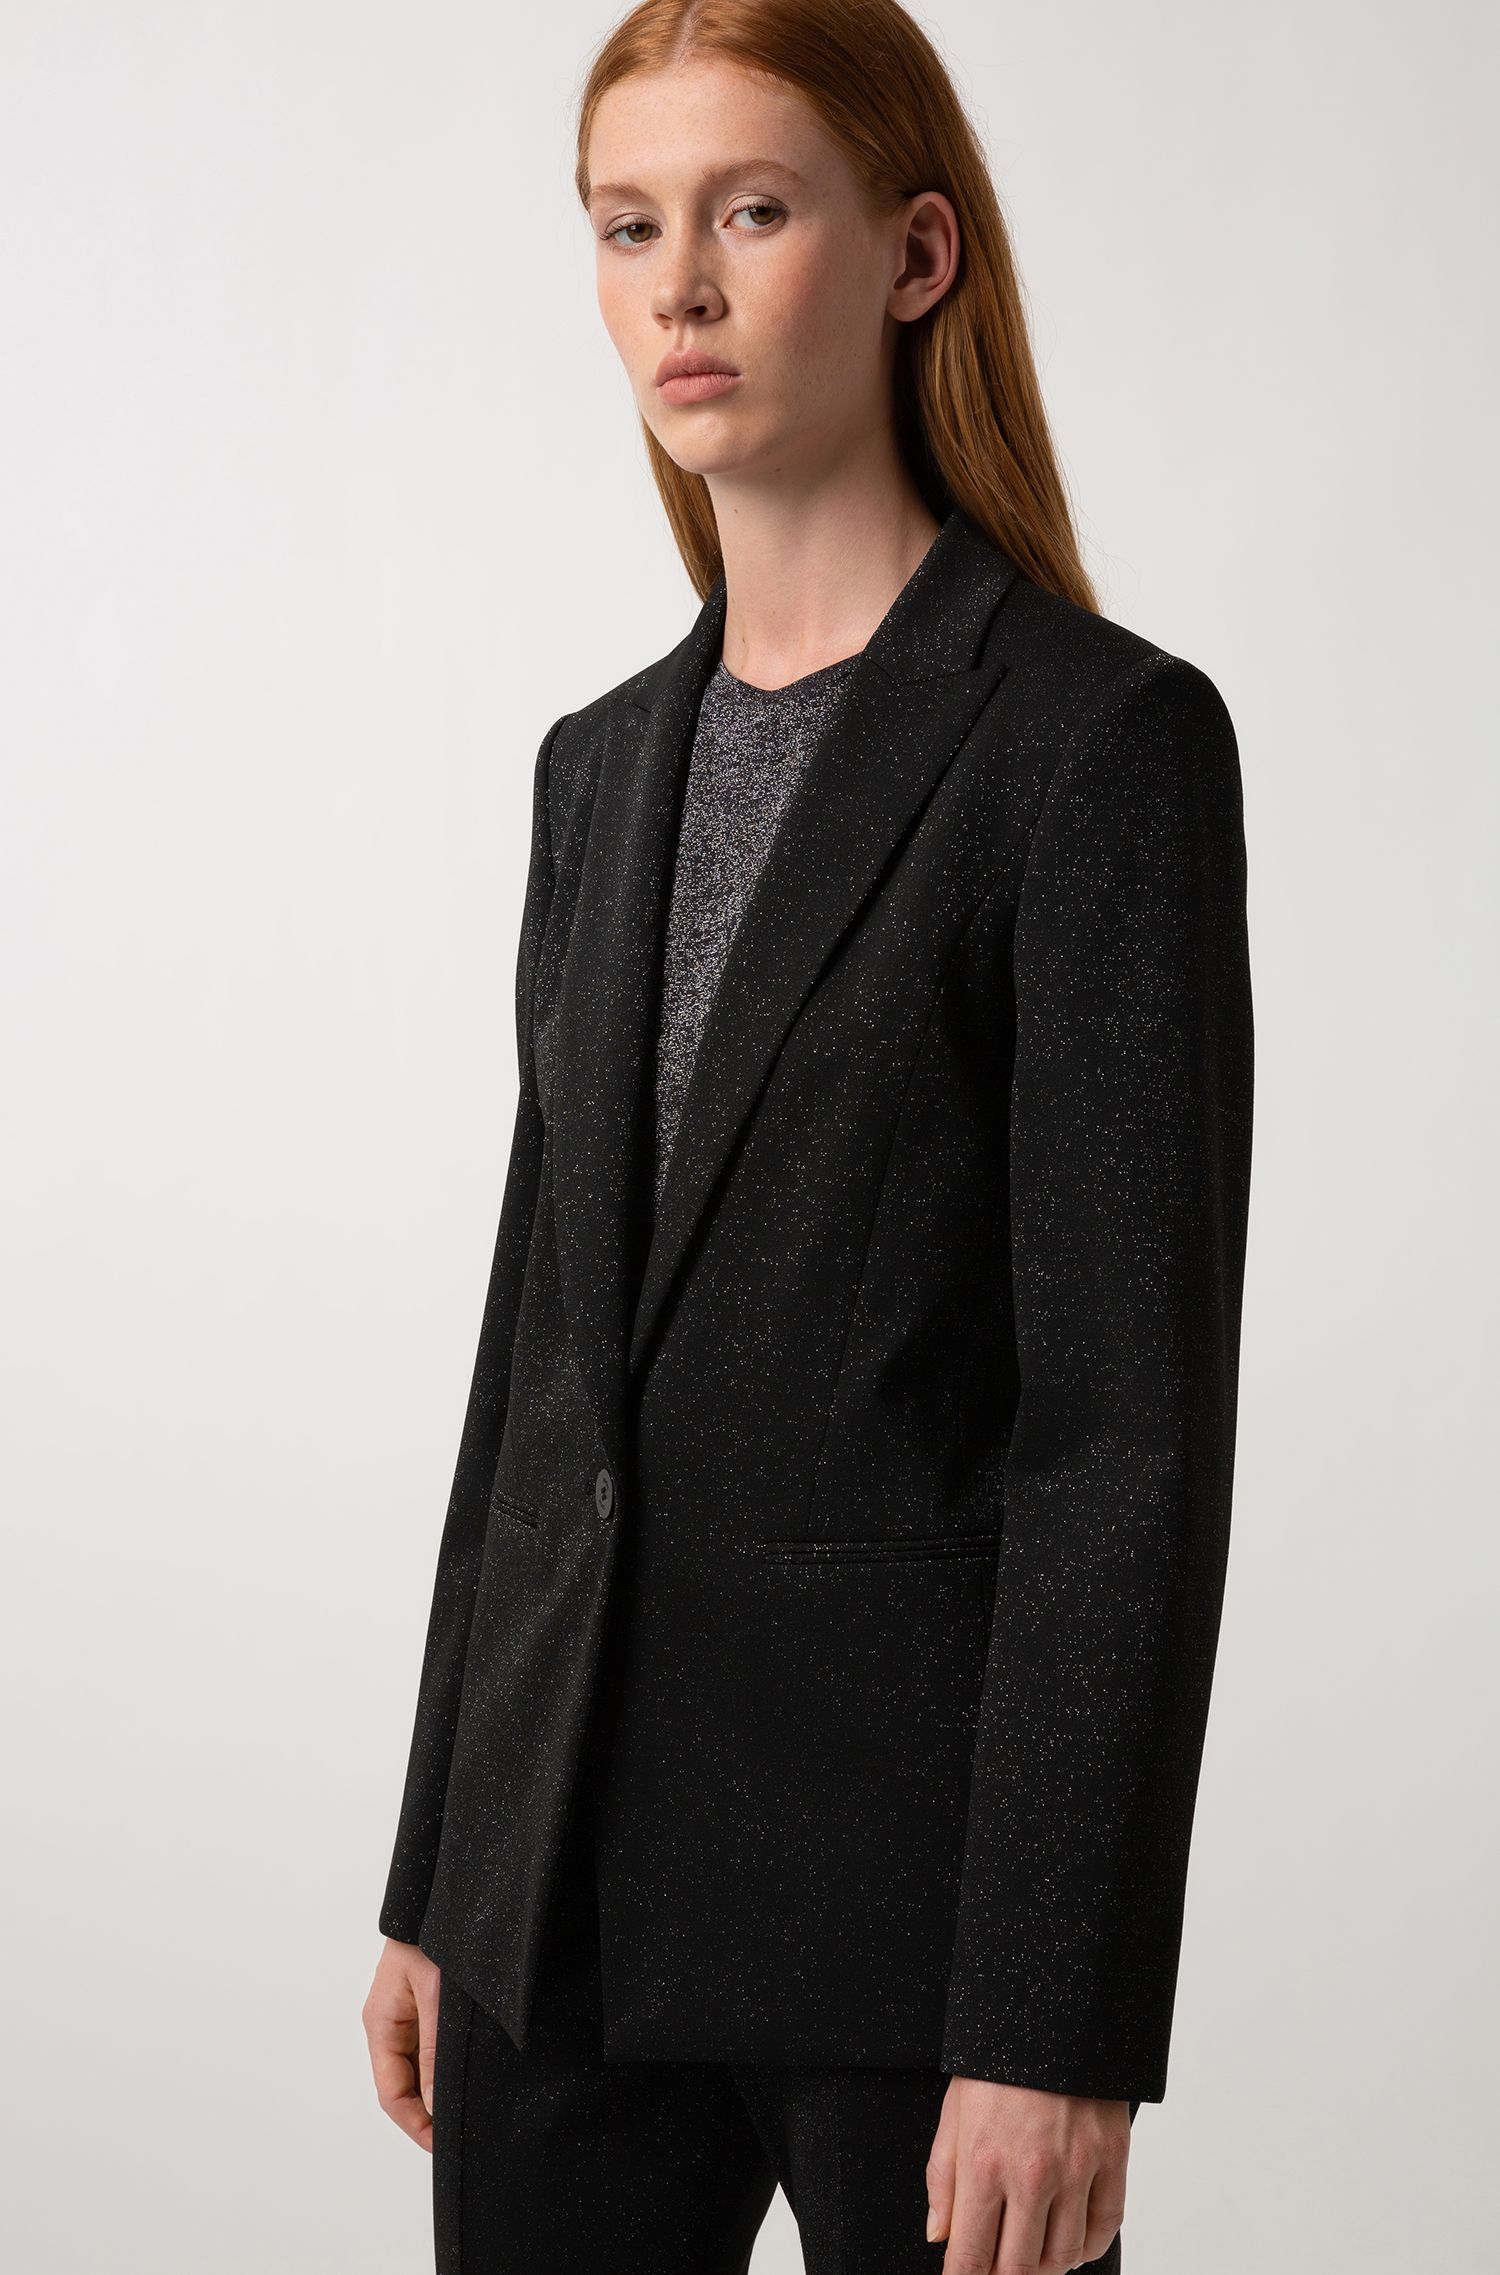 Regular-fit jacket in sparkly stretch-jersey fabric, Patterned